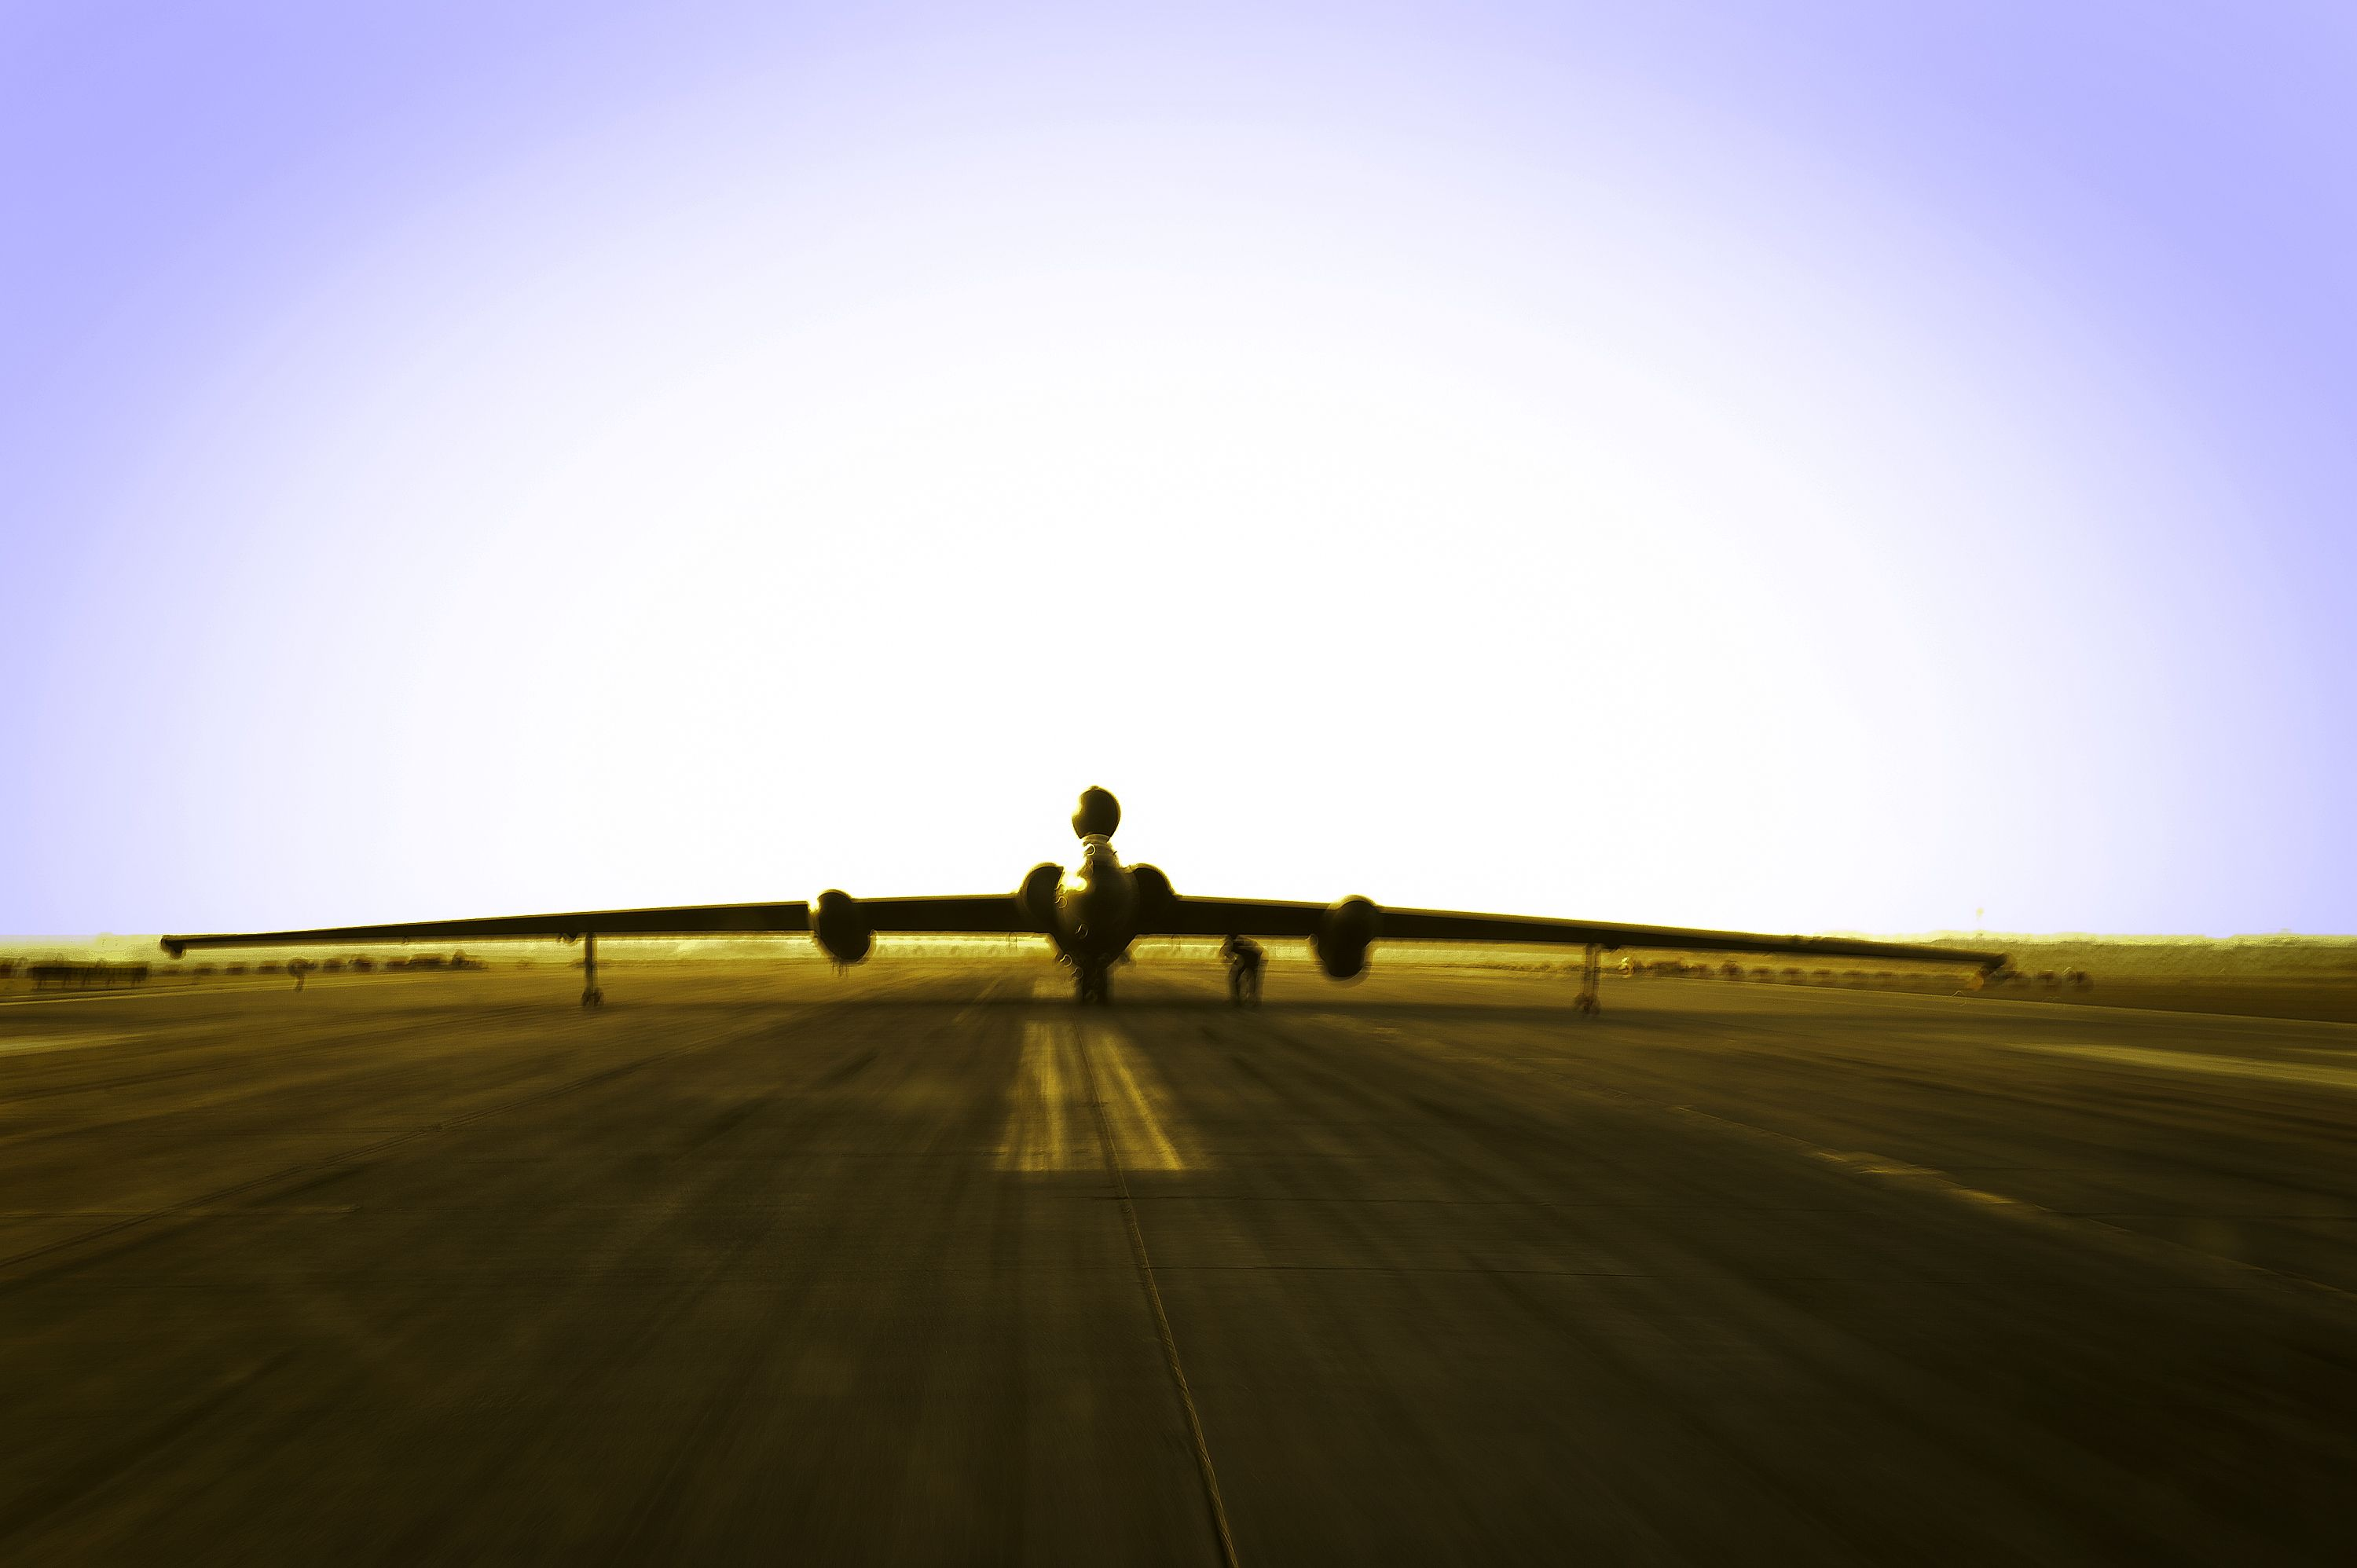 """Lt. Col. Jeff Klosky sits inside a Lockheed U-2 """"Dragon Lady"""" preparing for his flight April 20, 2014, at a flightline in Southwest Asia. The flight marked Klosky's 2,500th hour of flight in the U-2. (U.S. Air Force photo/Tech. Sgt. Russ Scalf)"""